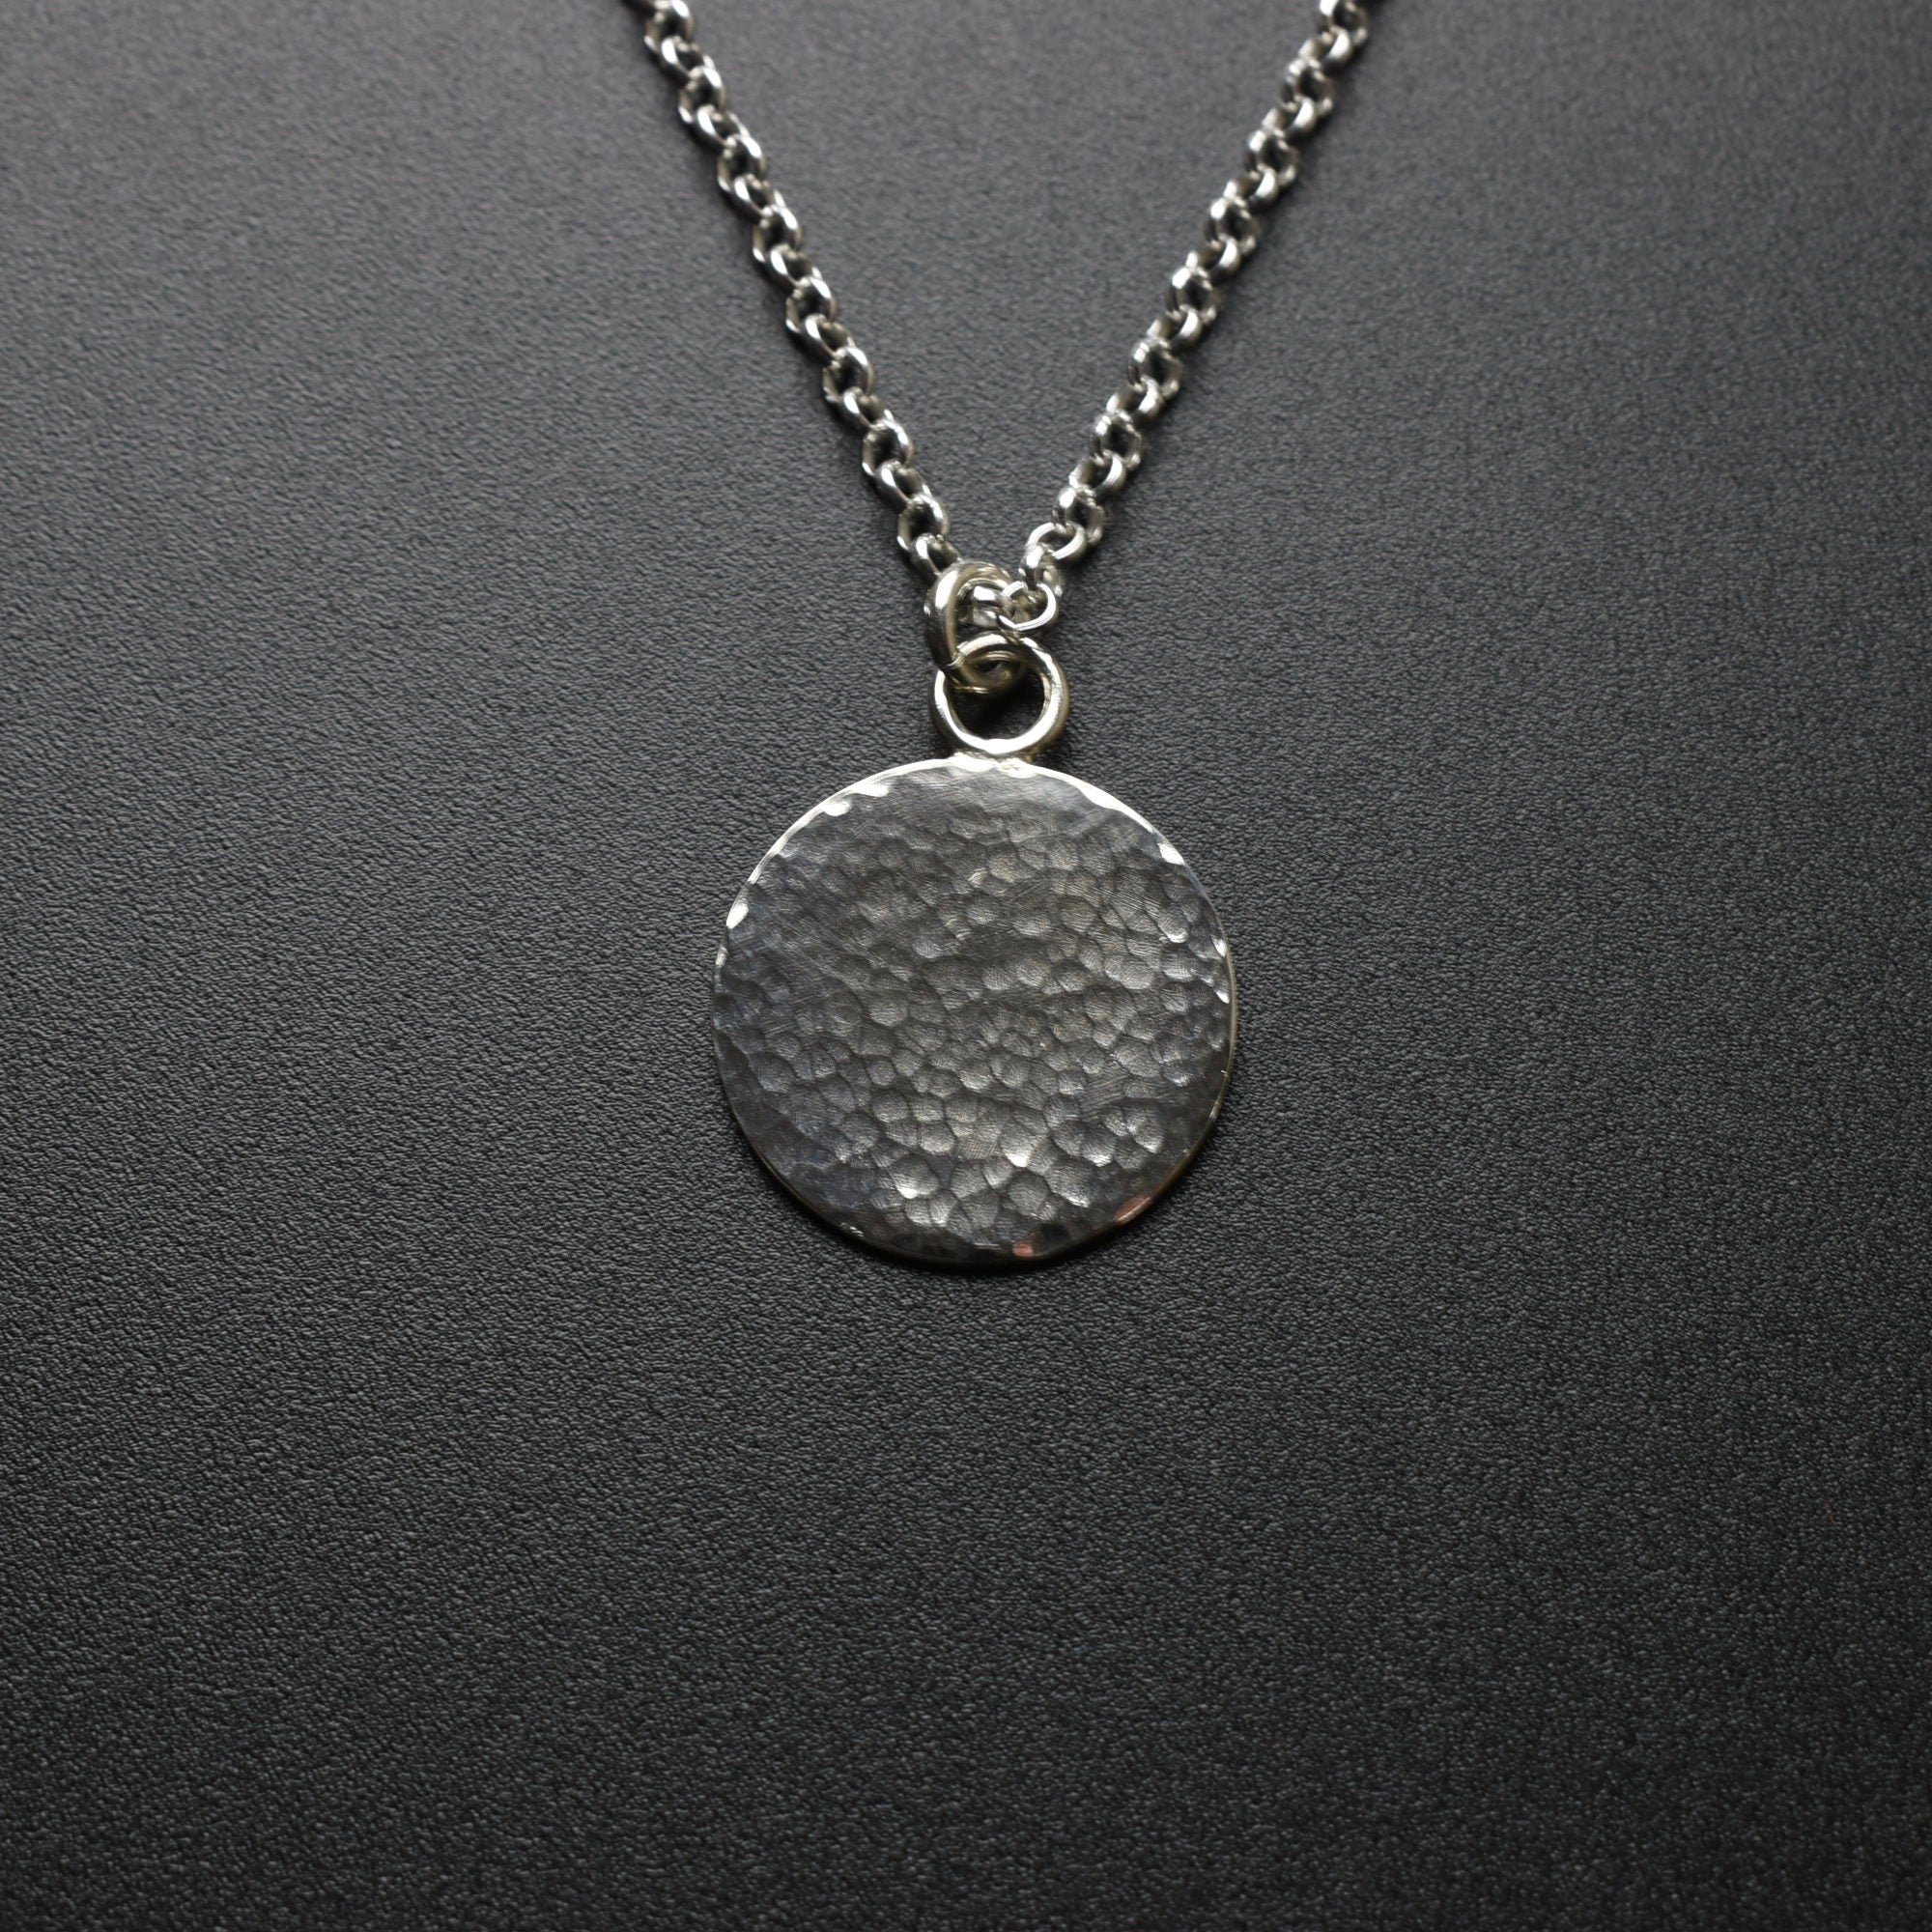 Hammered Pendant & Chain